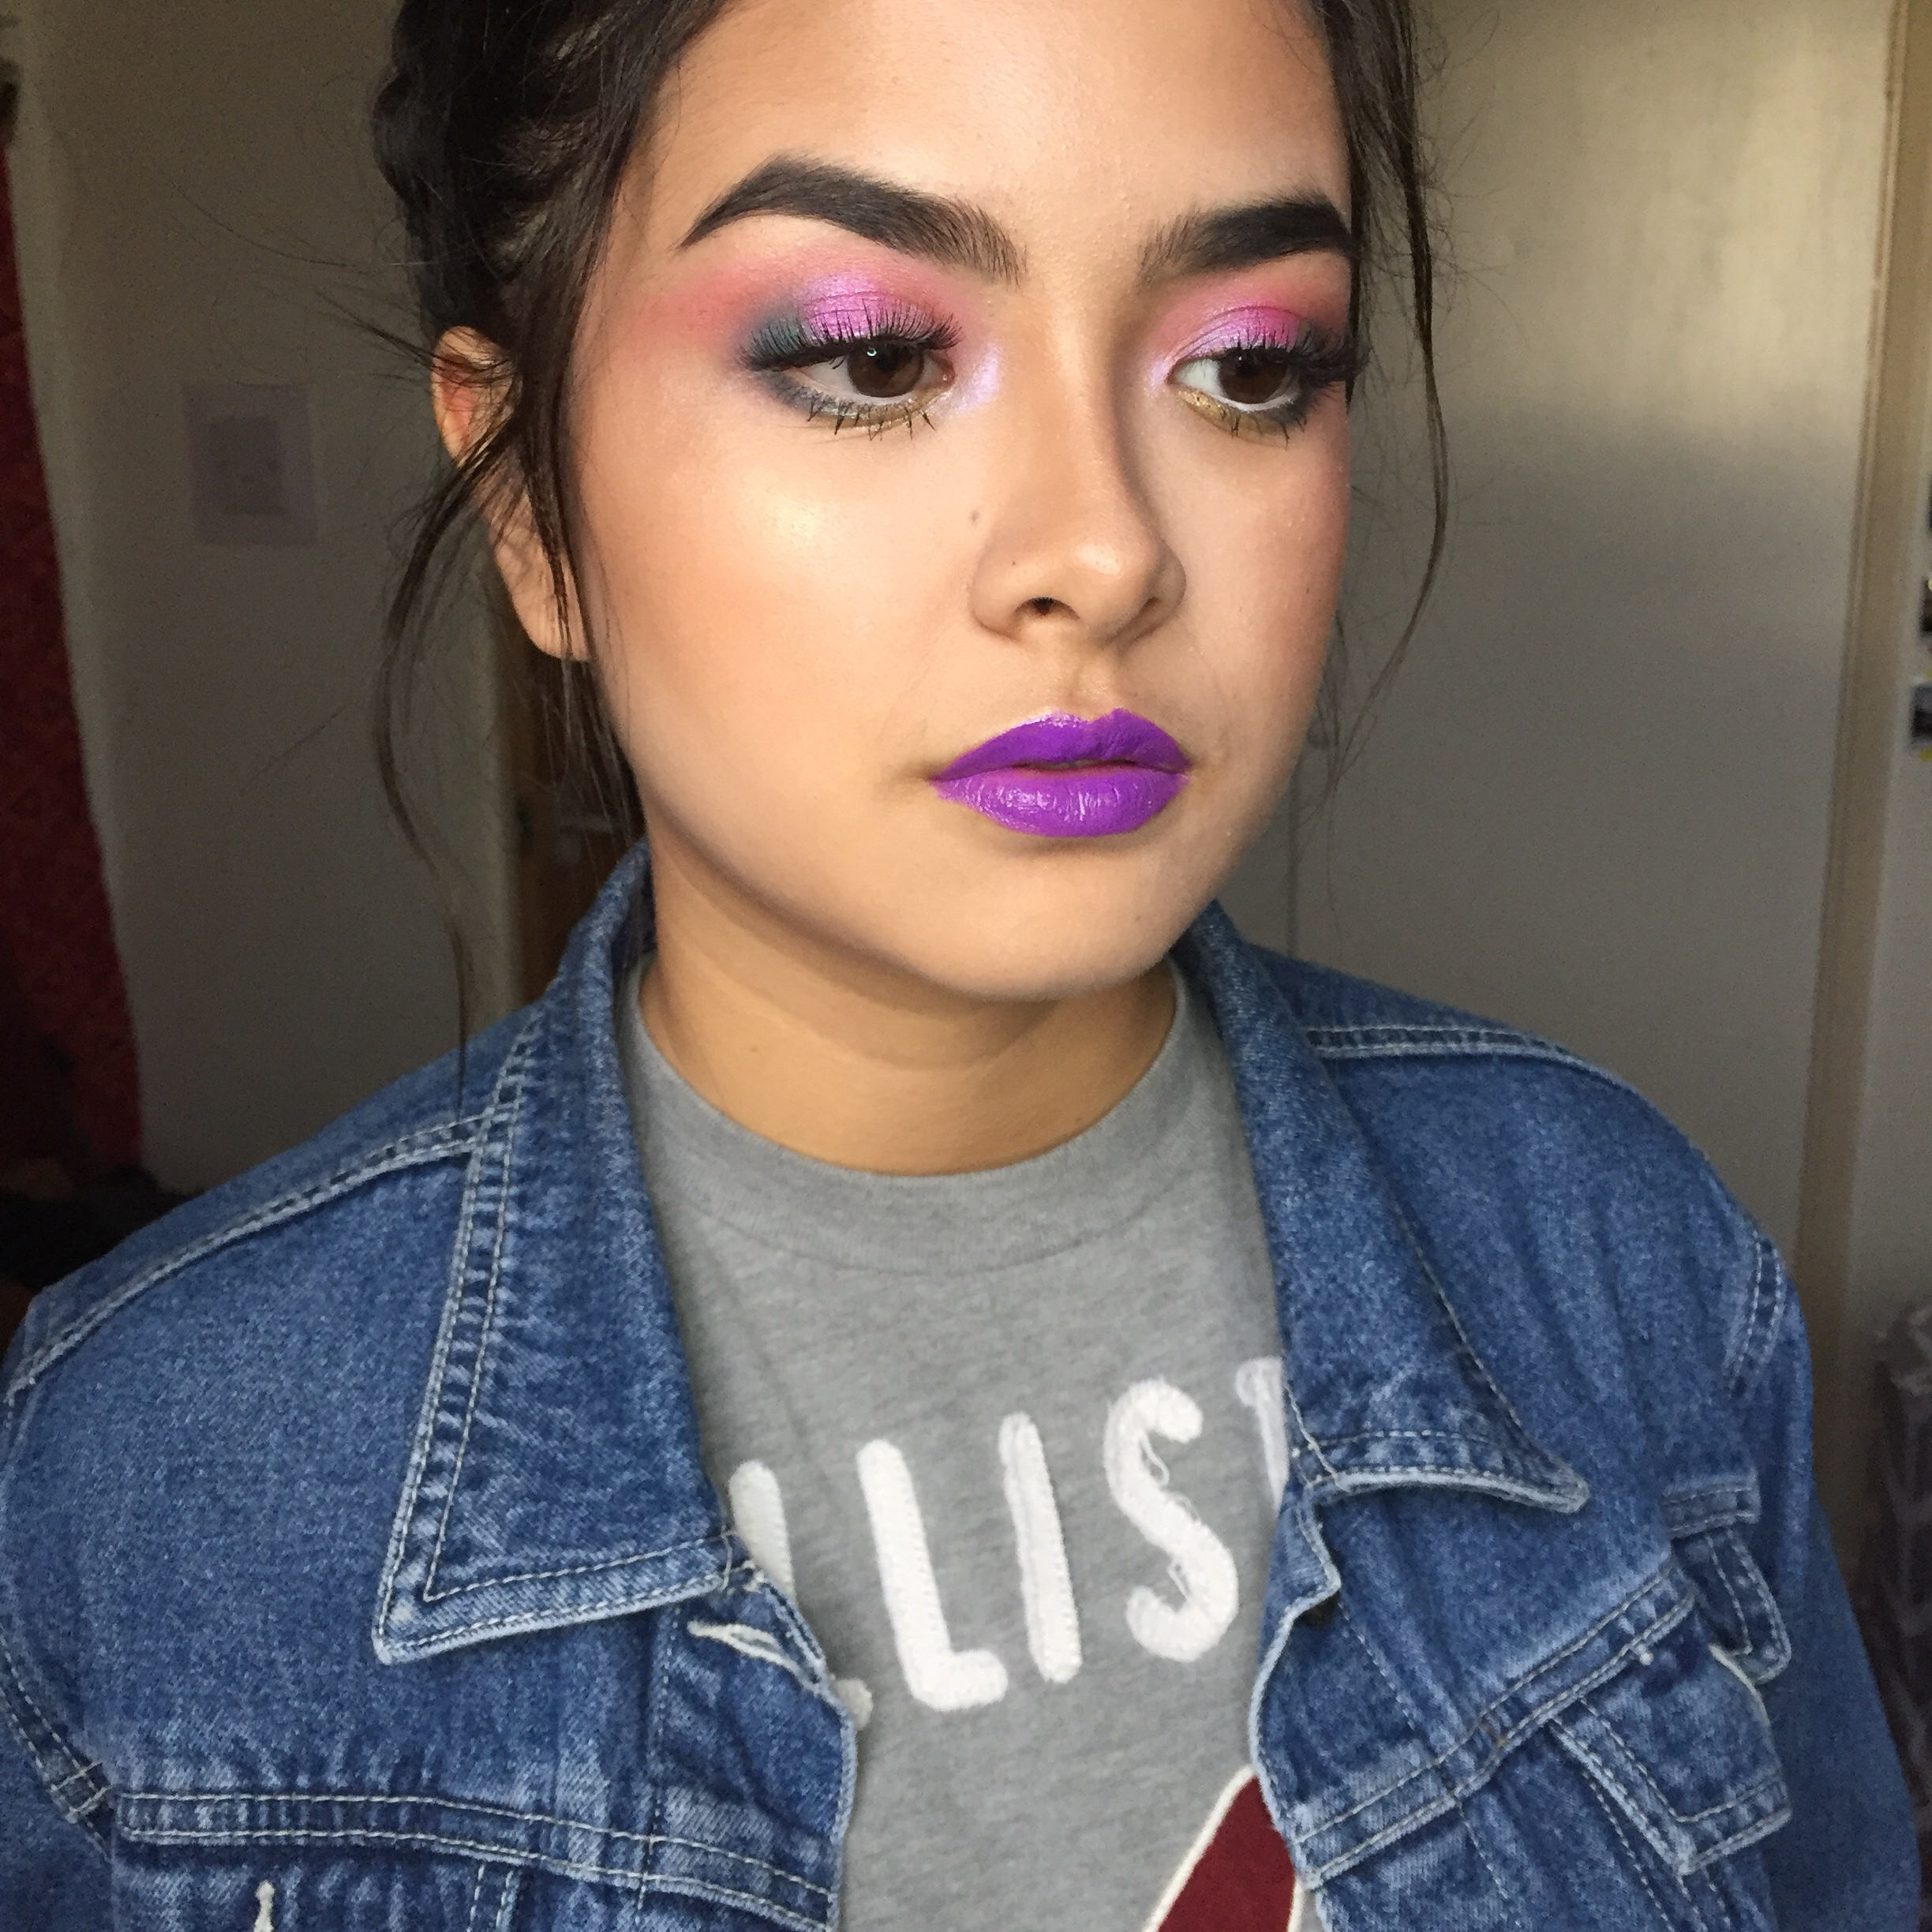 Colourful Makeup Using Nyx Mochi Palette Look Sisters Who Makeup Together